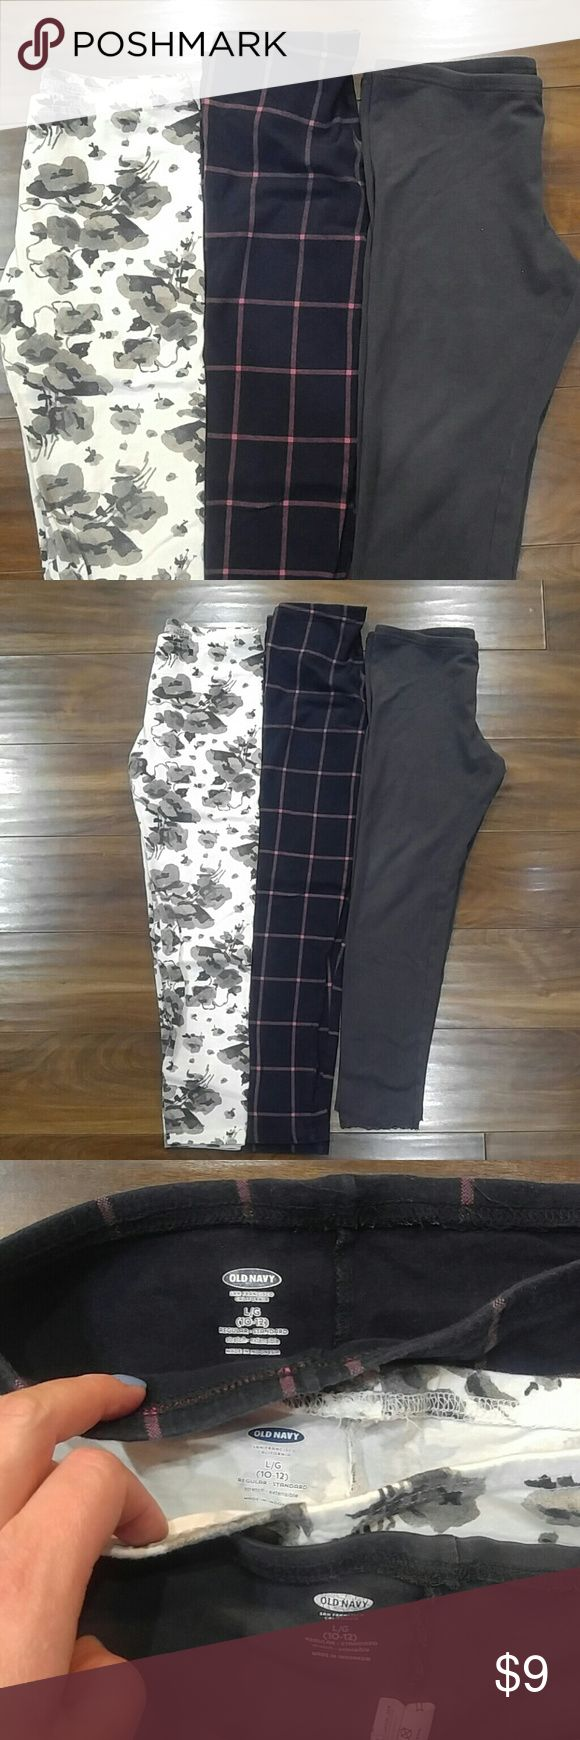 3 pair of Old Navy leggings Three pair of leggings from Old Navy. Size 10/12. In gently used condition. Navy with pink plaid, cream with grey and black floral and charcoal grey with lace ankle hem. Old Navy Bottoms Leggings